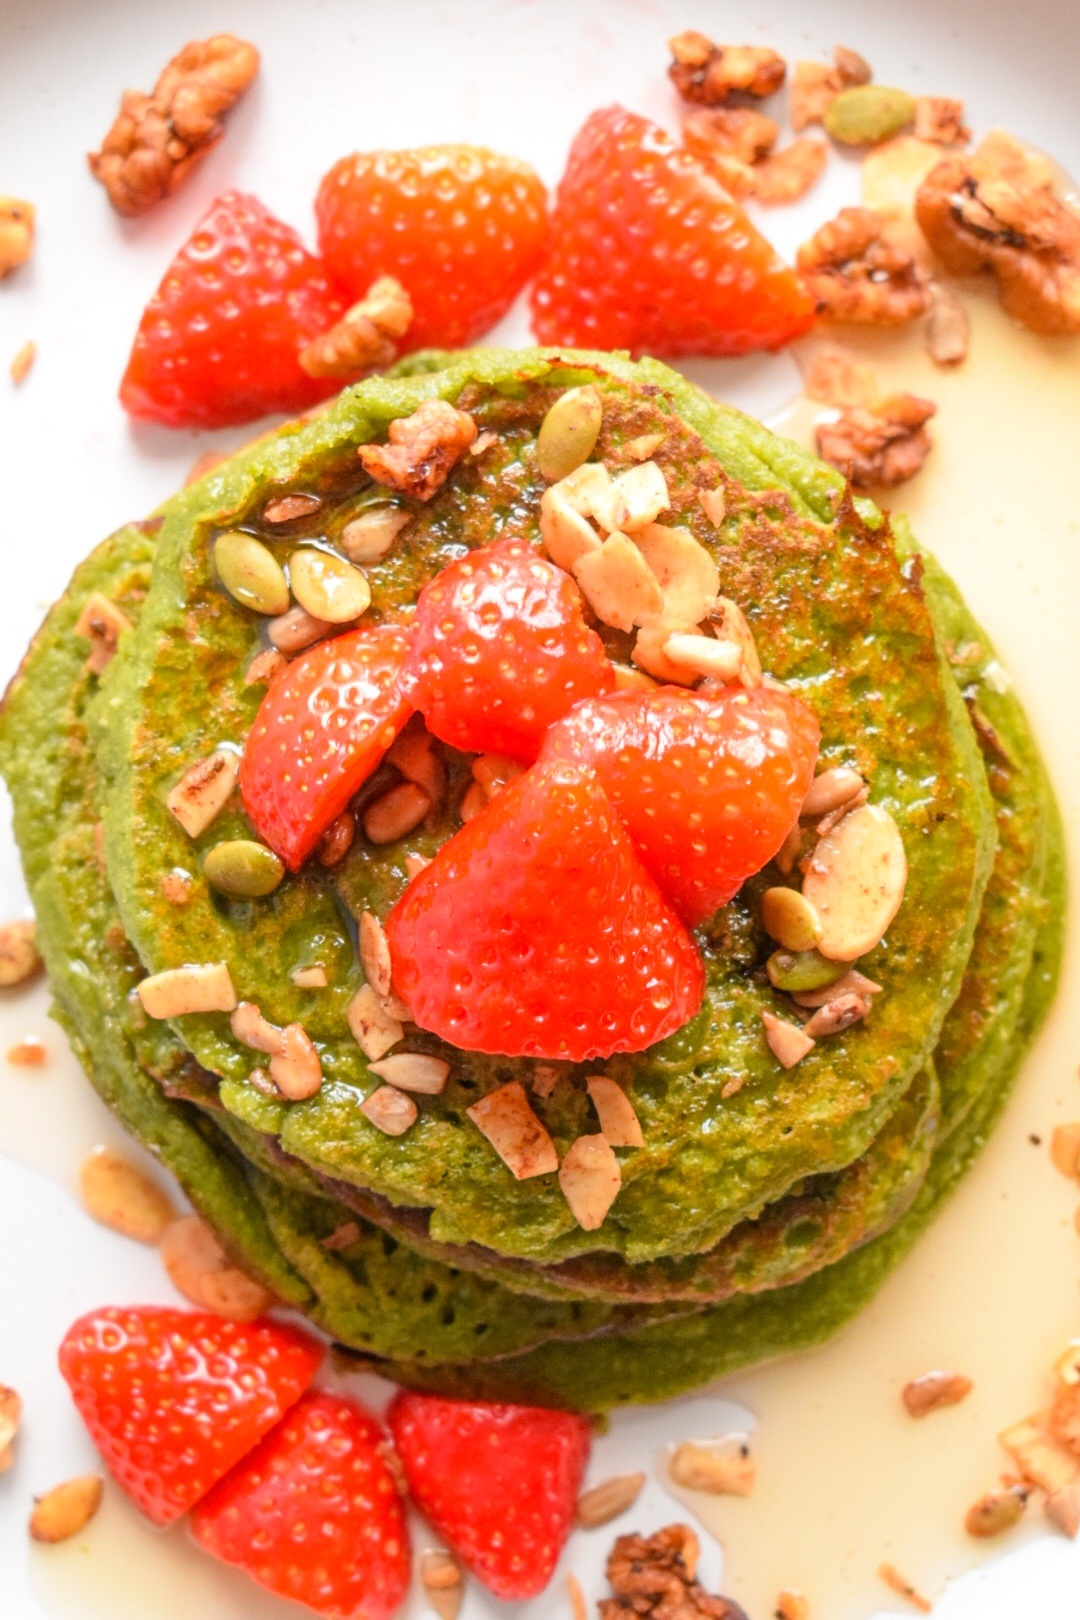 Spinach and oats pancakes